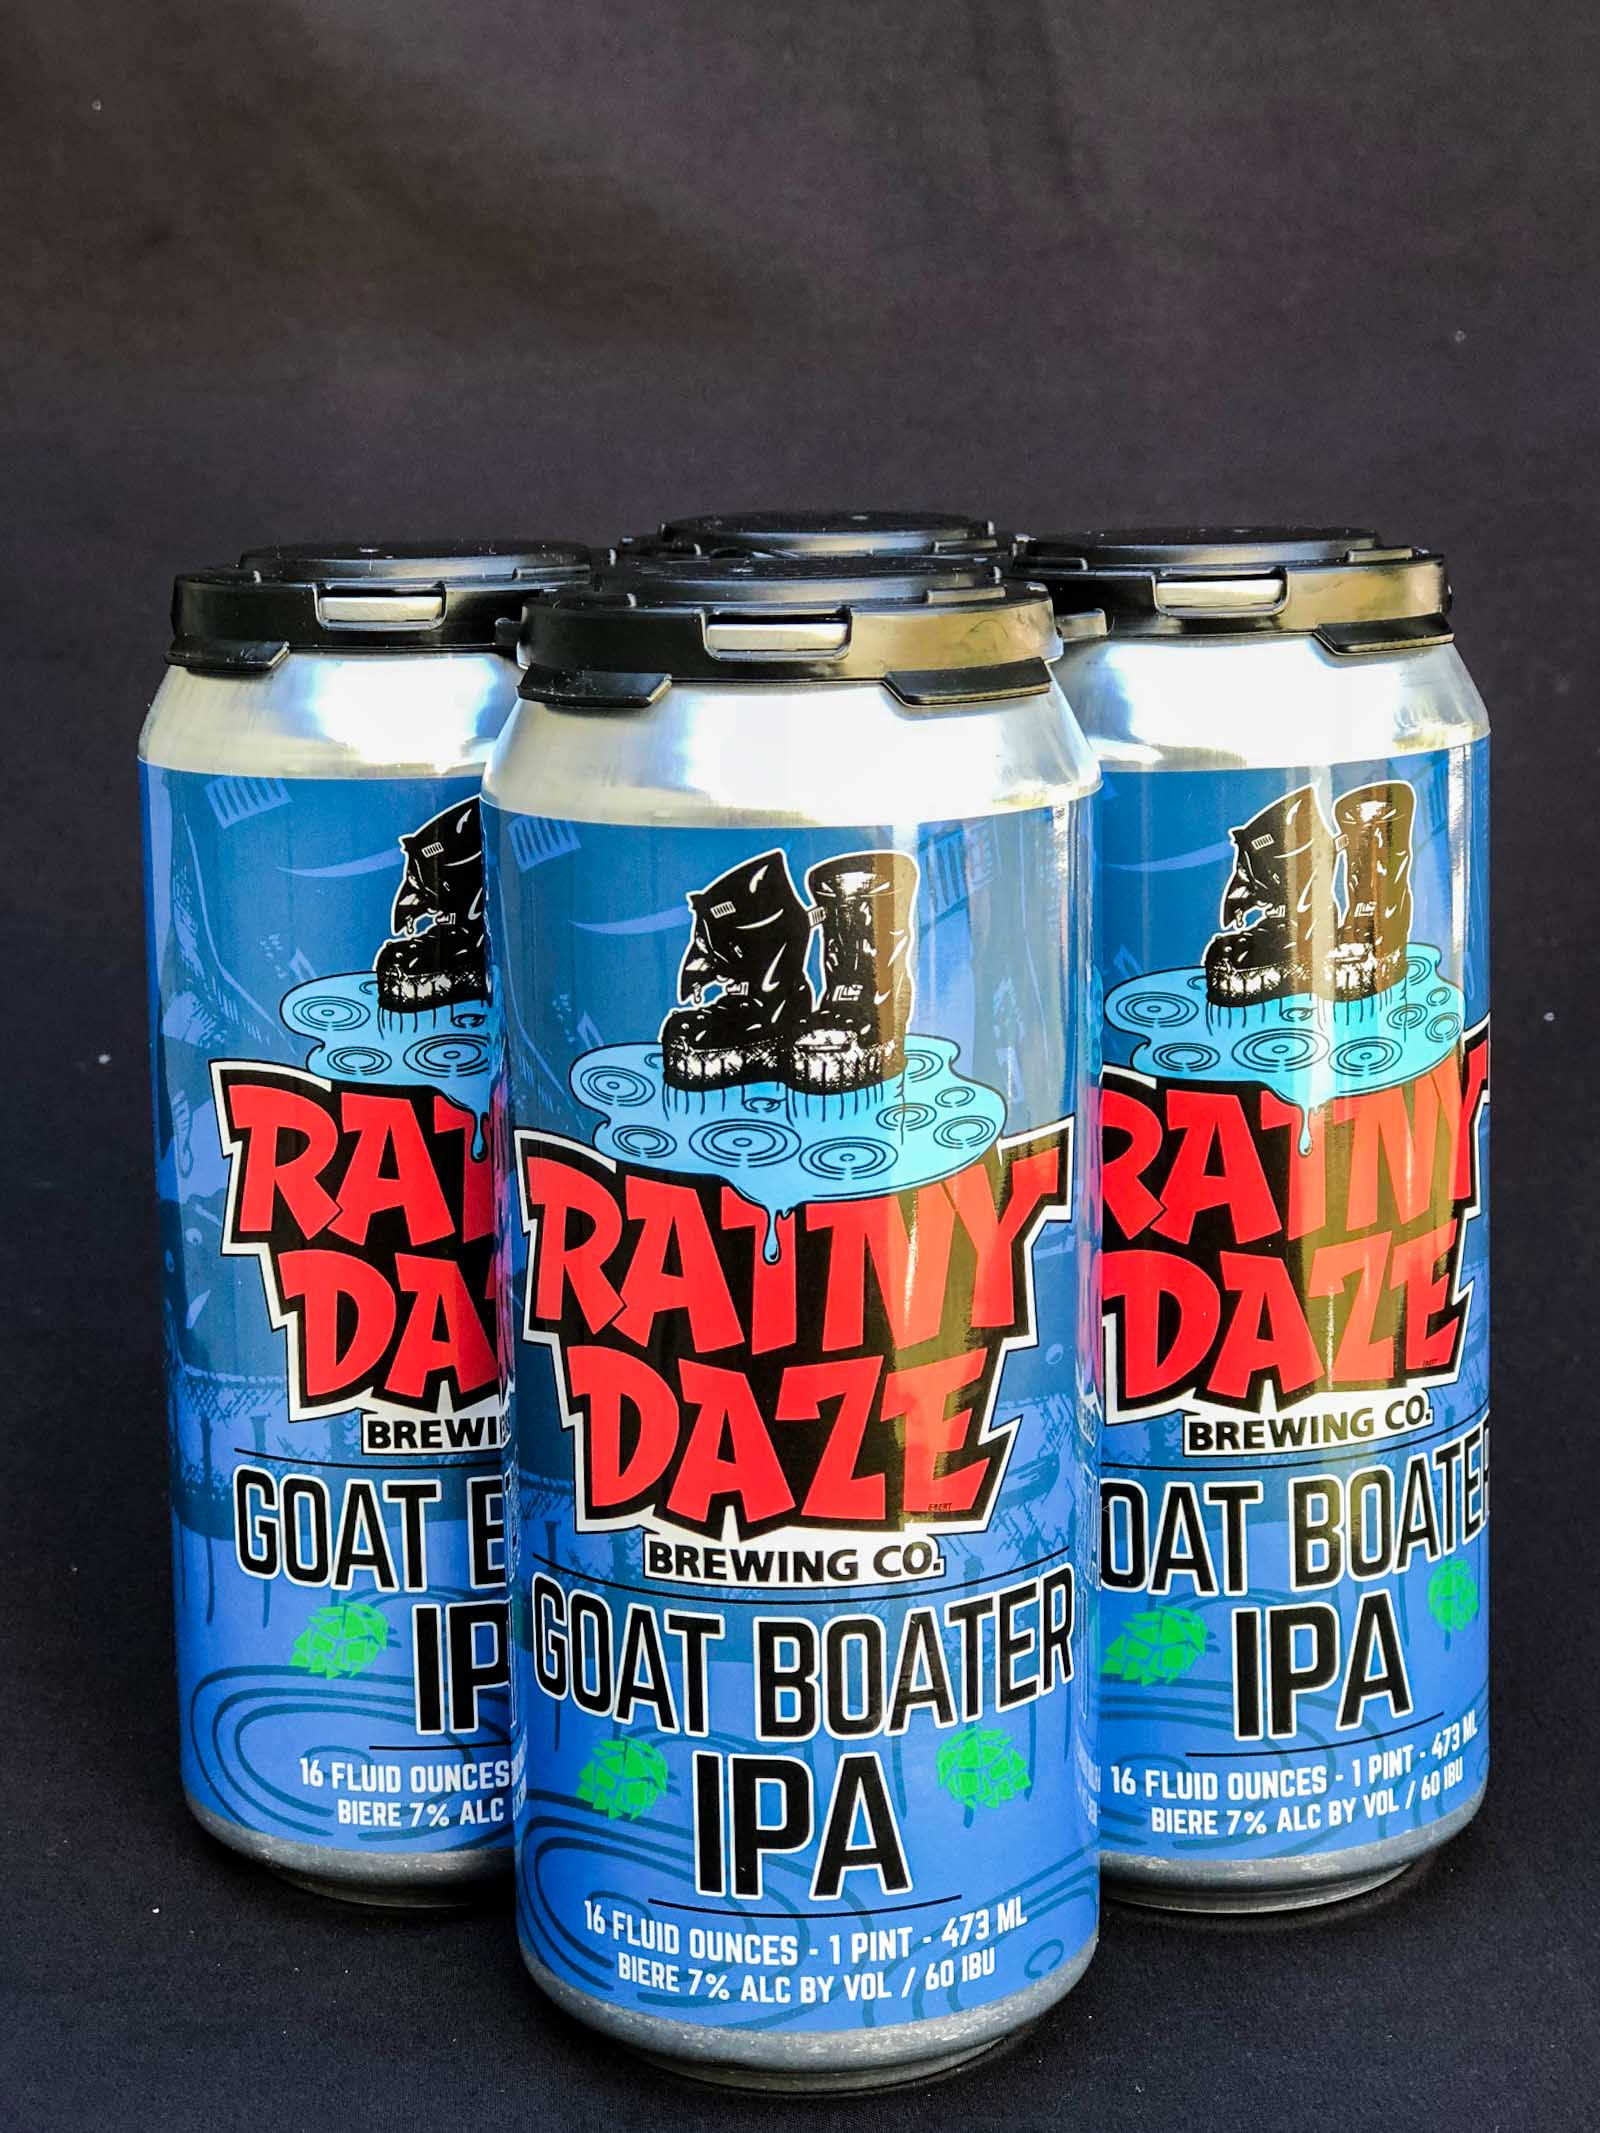 Rainy Daze Brewing Goat Boater IPA